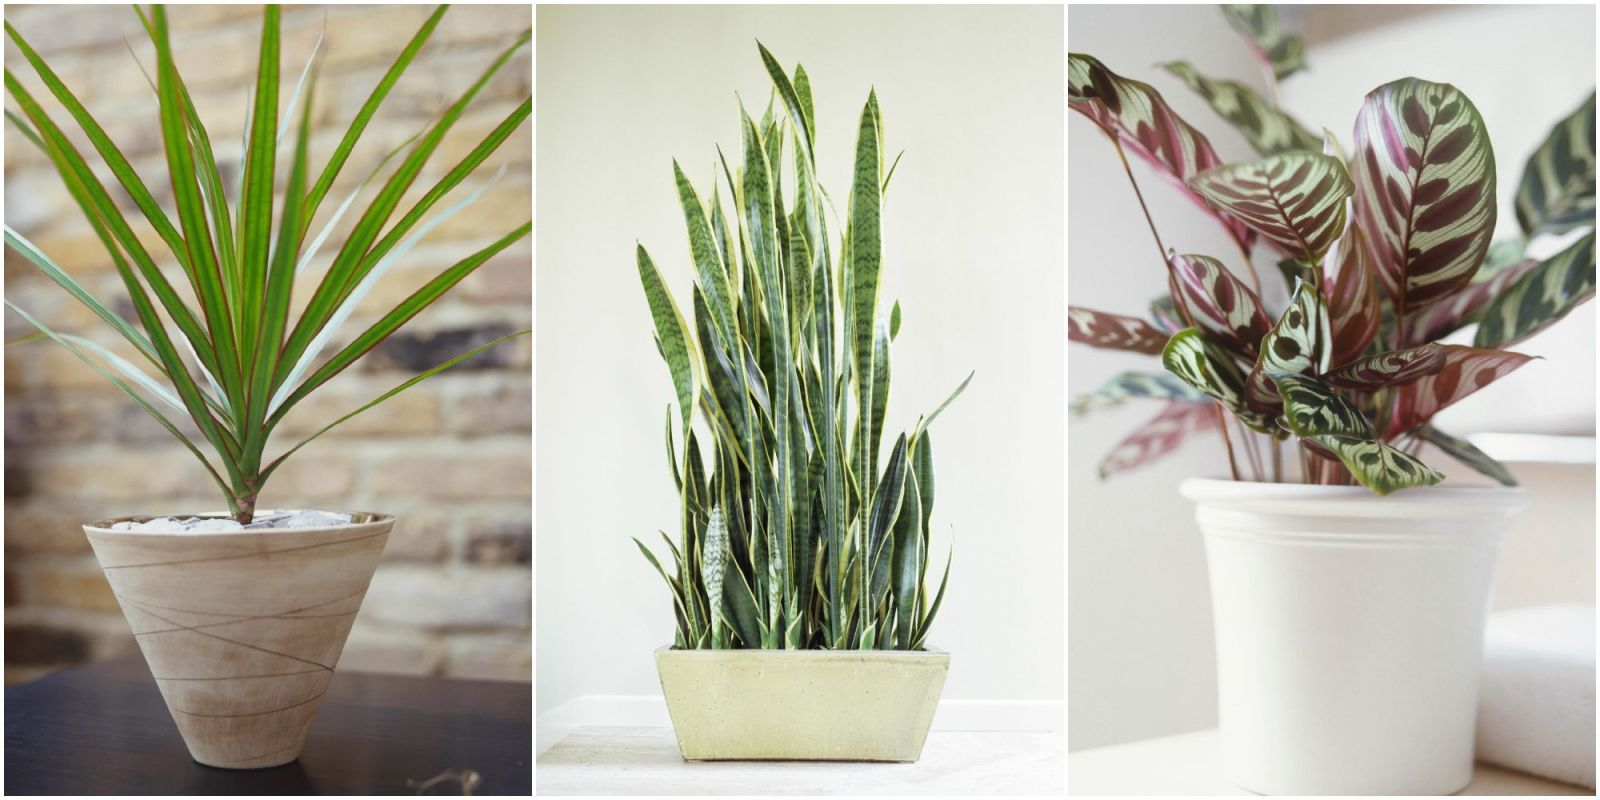 House Plants low light houseplants - plants that don't require much light